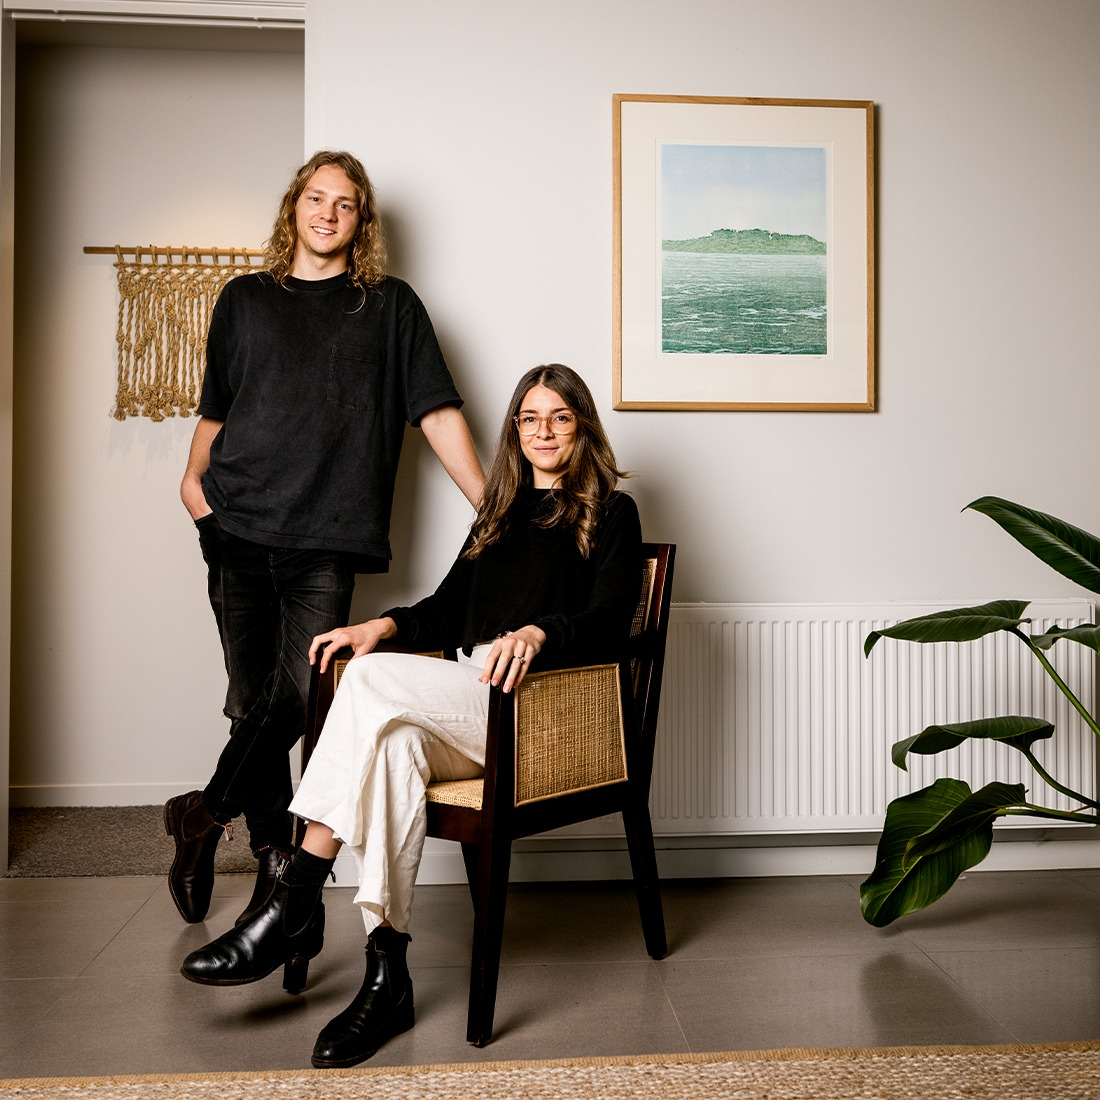 Phoebe Simpson sitting on a chair and Tom Simpson standing next to her - the owners of Hosea